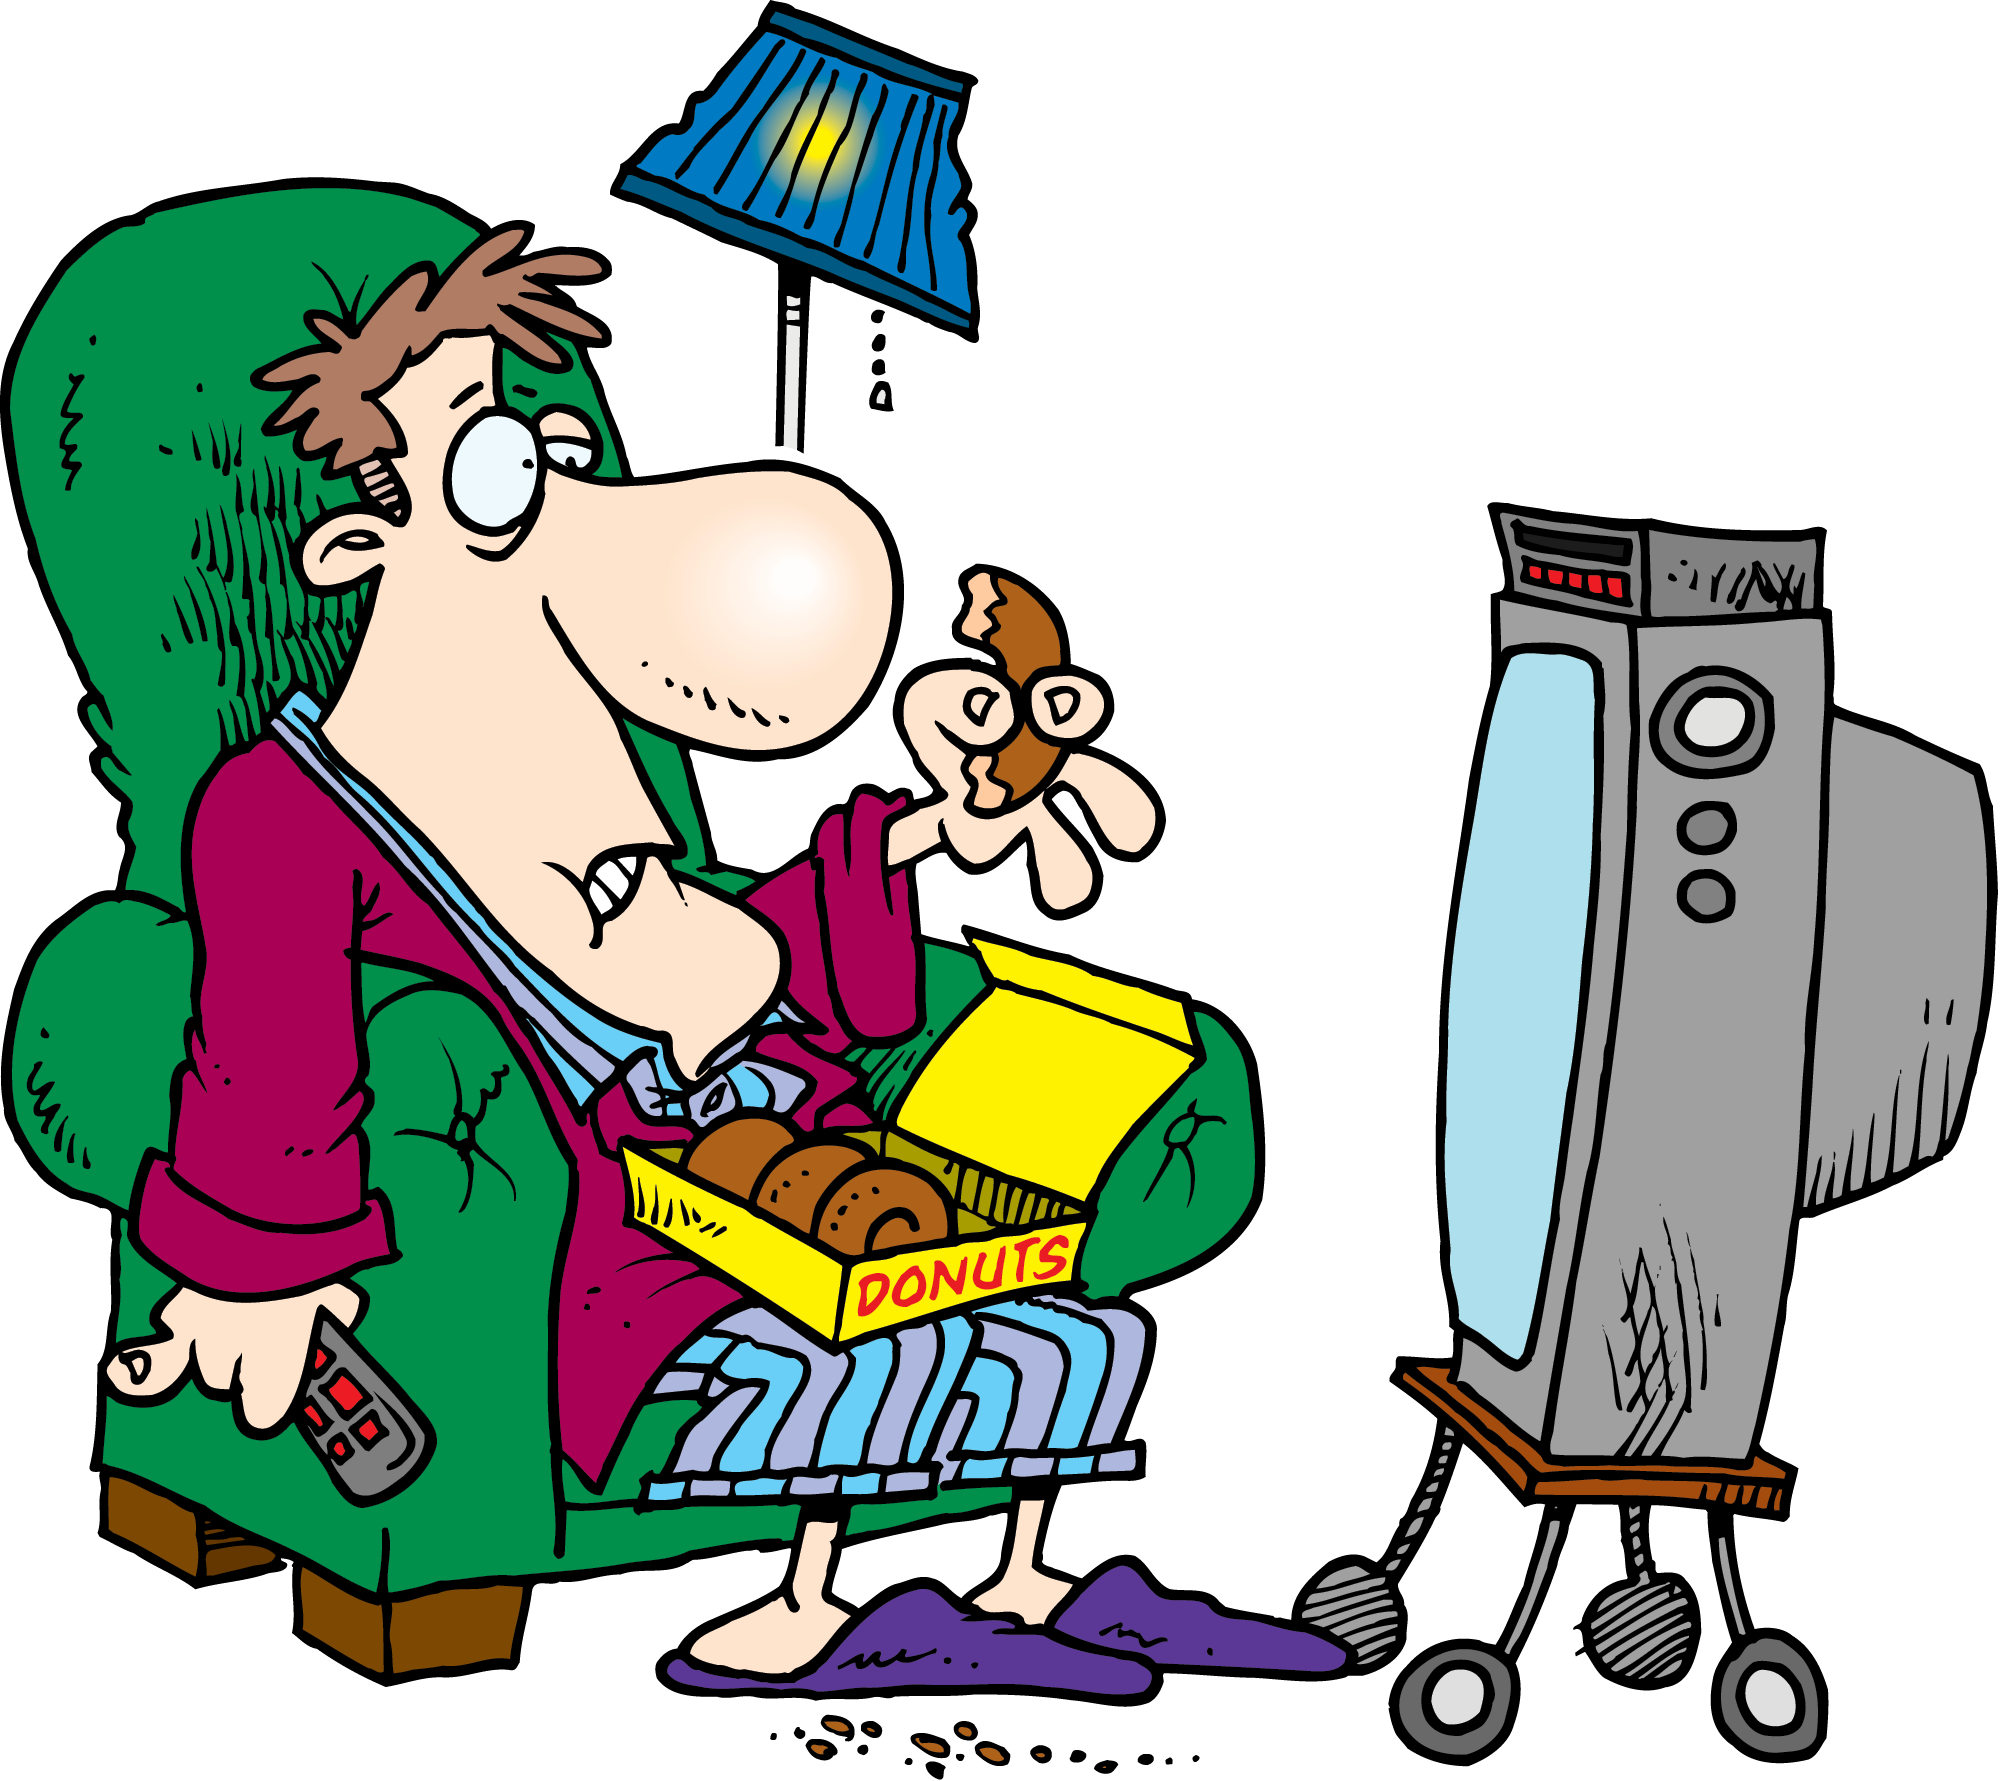 Couch clipart comic. Image result for woman